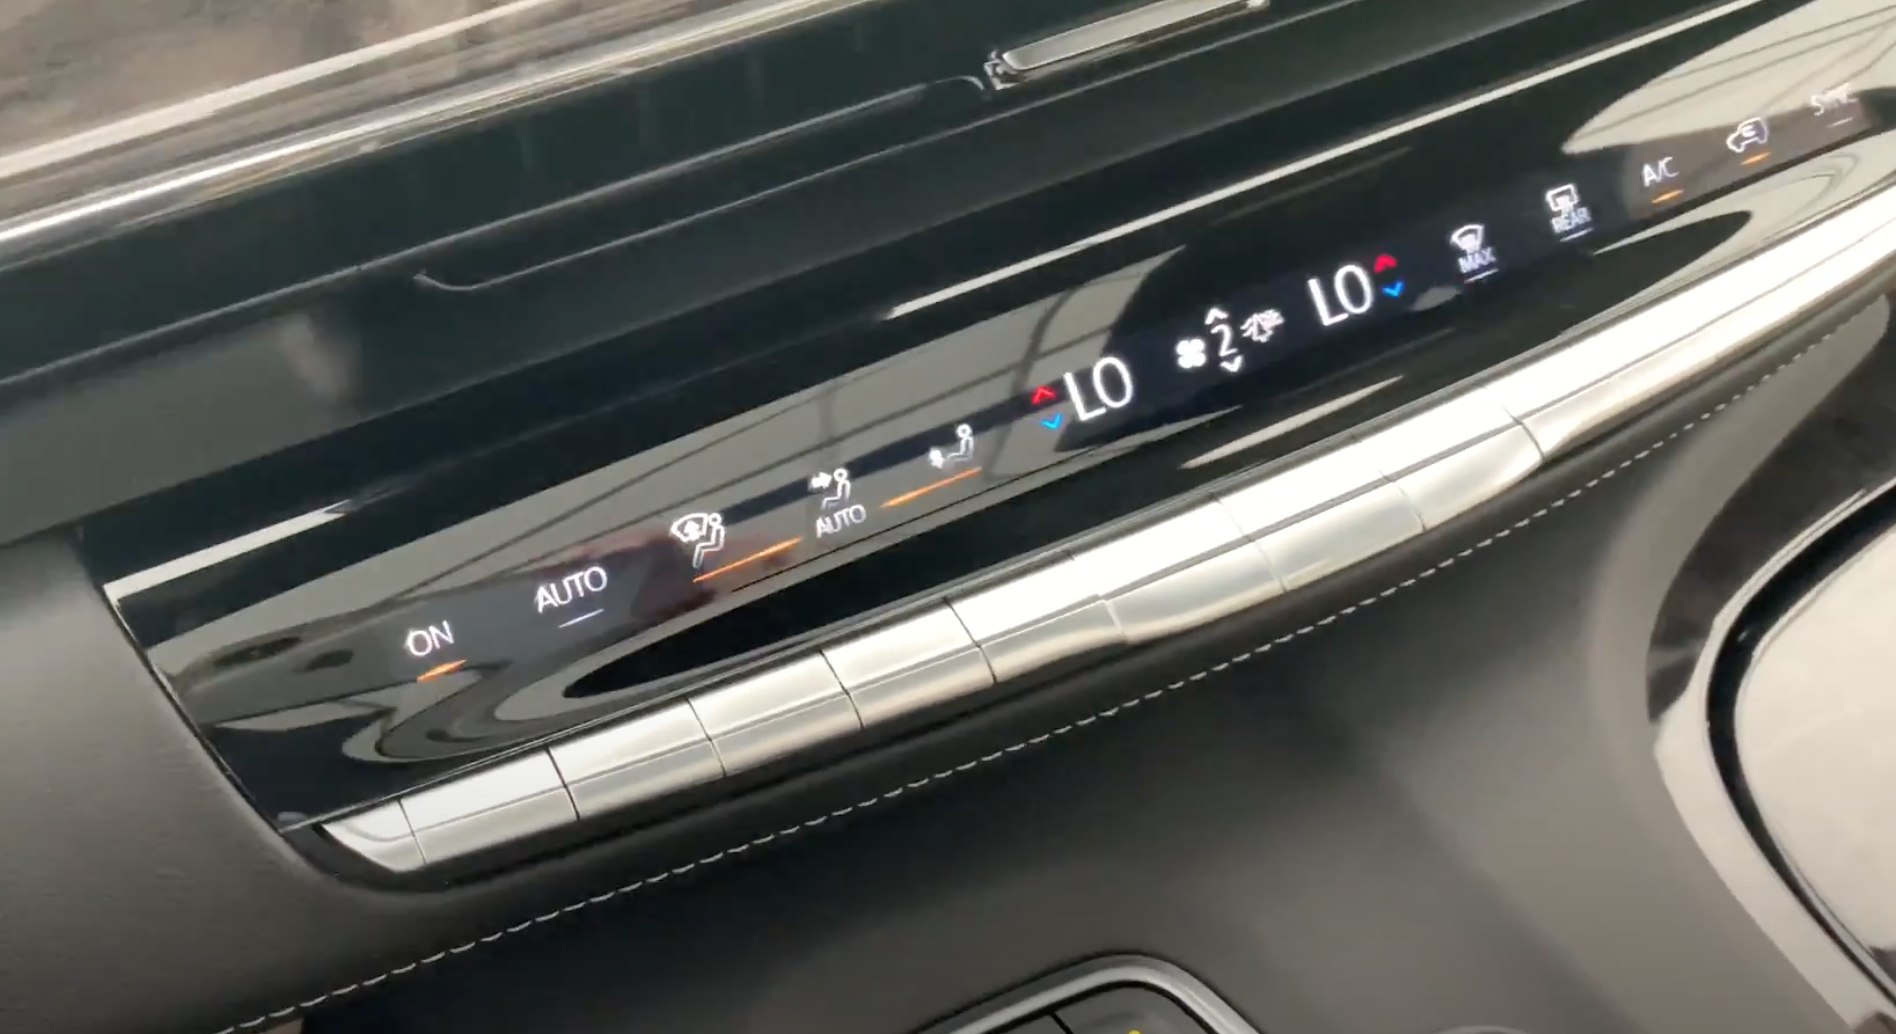 Physical buttons underneath the infotainment system